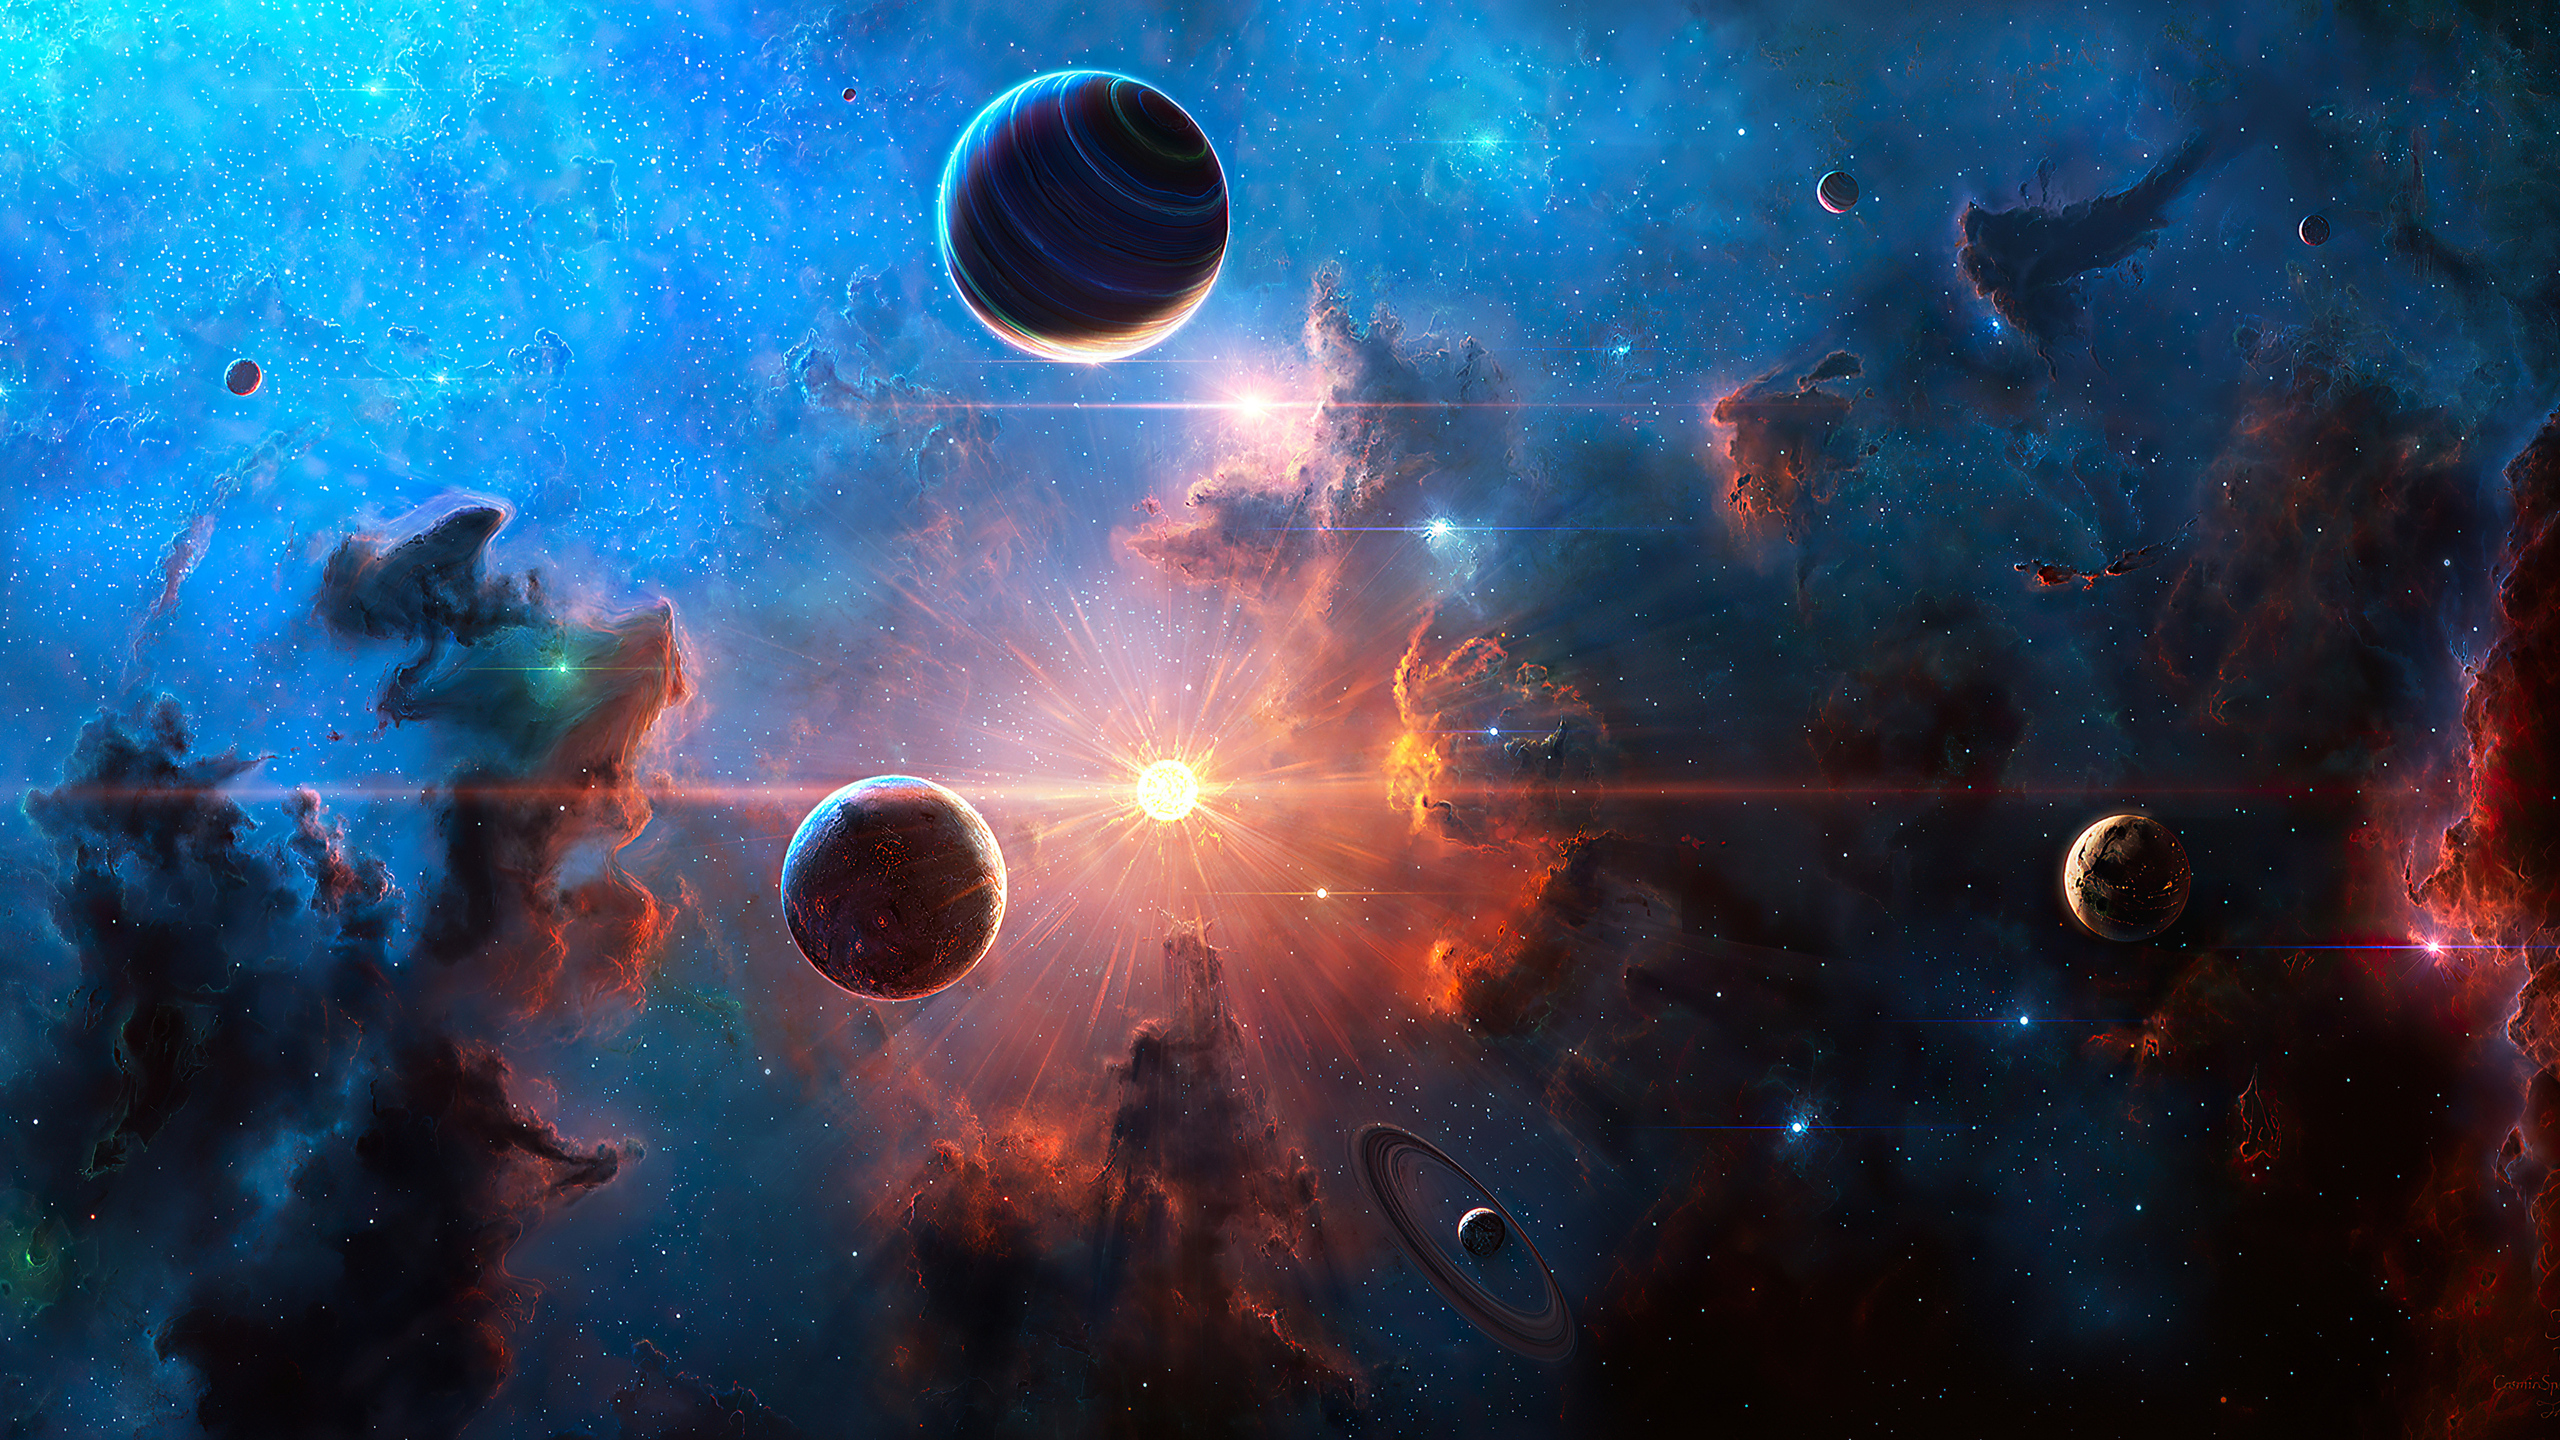 2560x1440 Neblua Space Planet Art 4k 1440P Resolution HD 4k Wallpapers, Images, Backgrounds ...